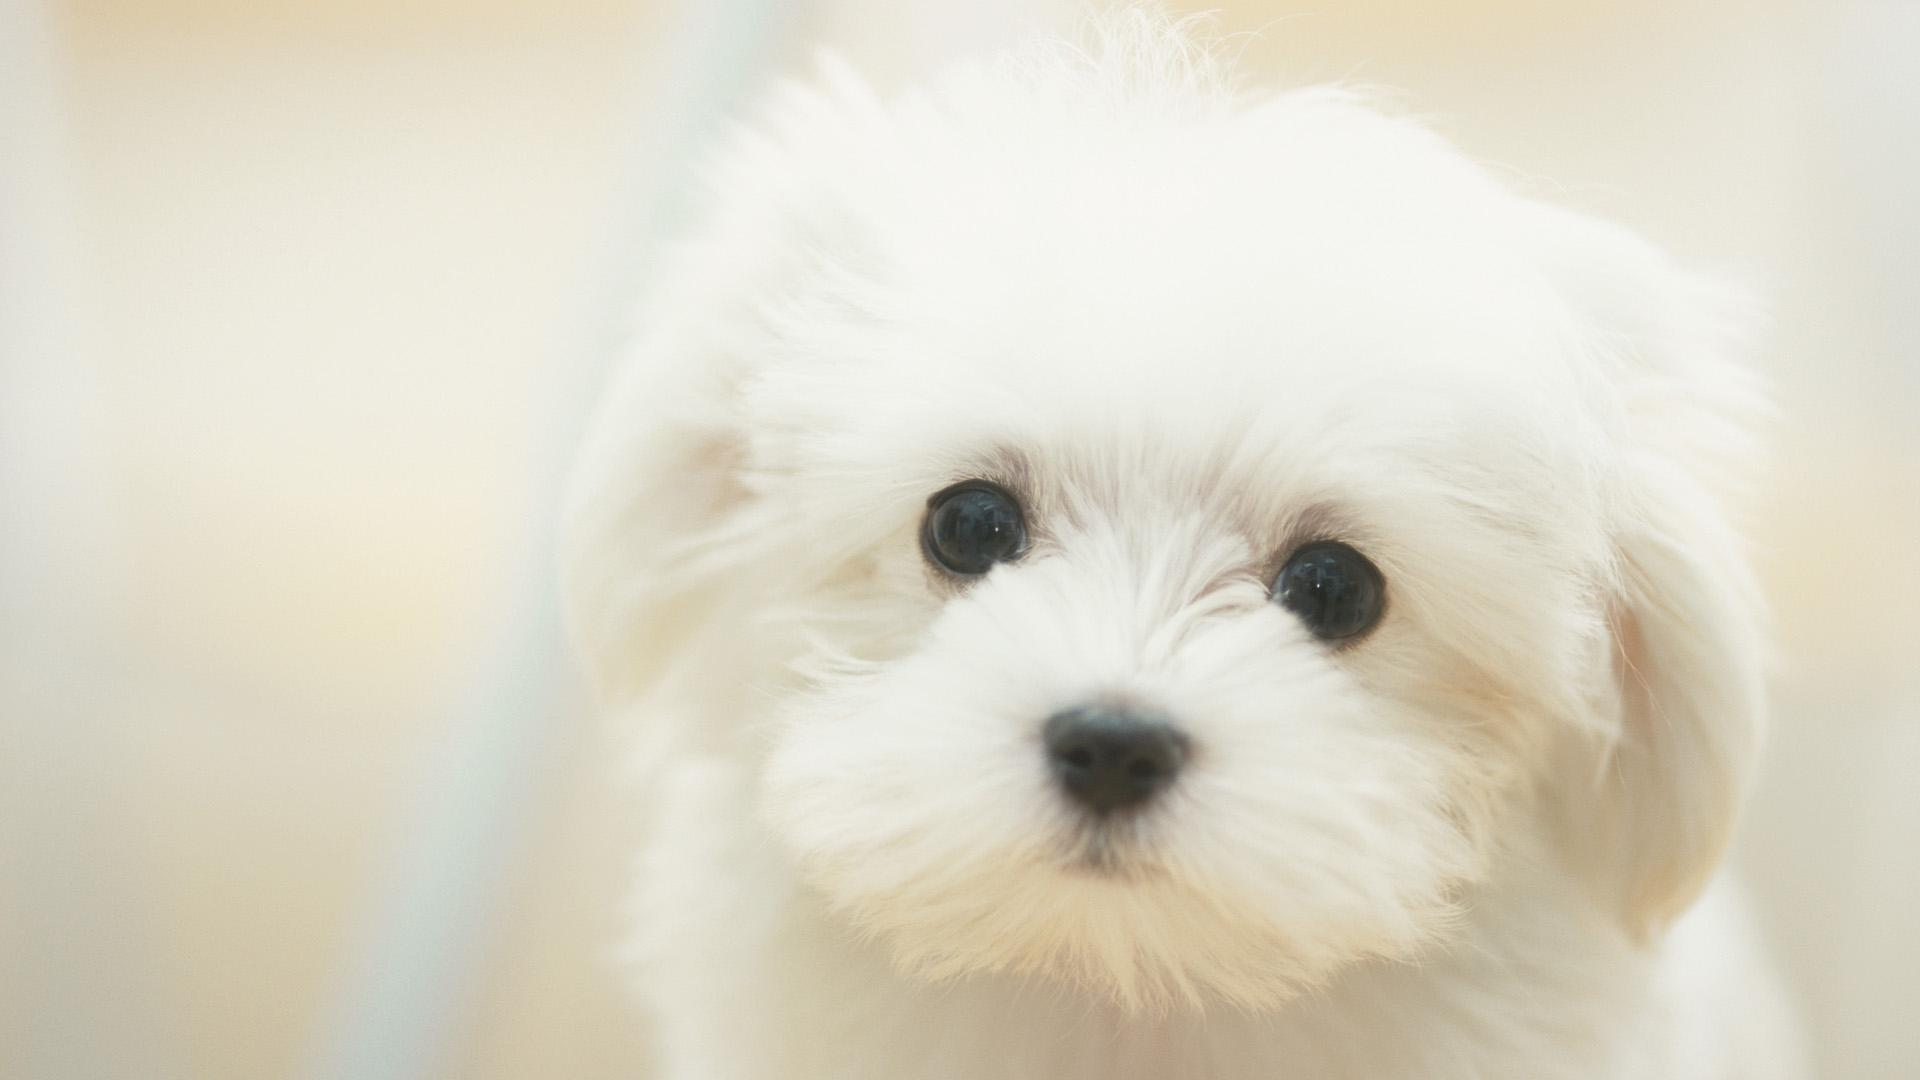 Beware of teacup dogs: they're extremely fragile!